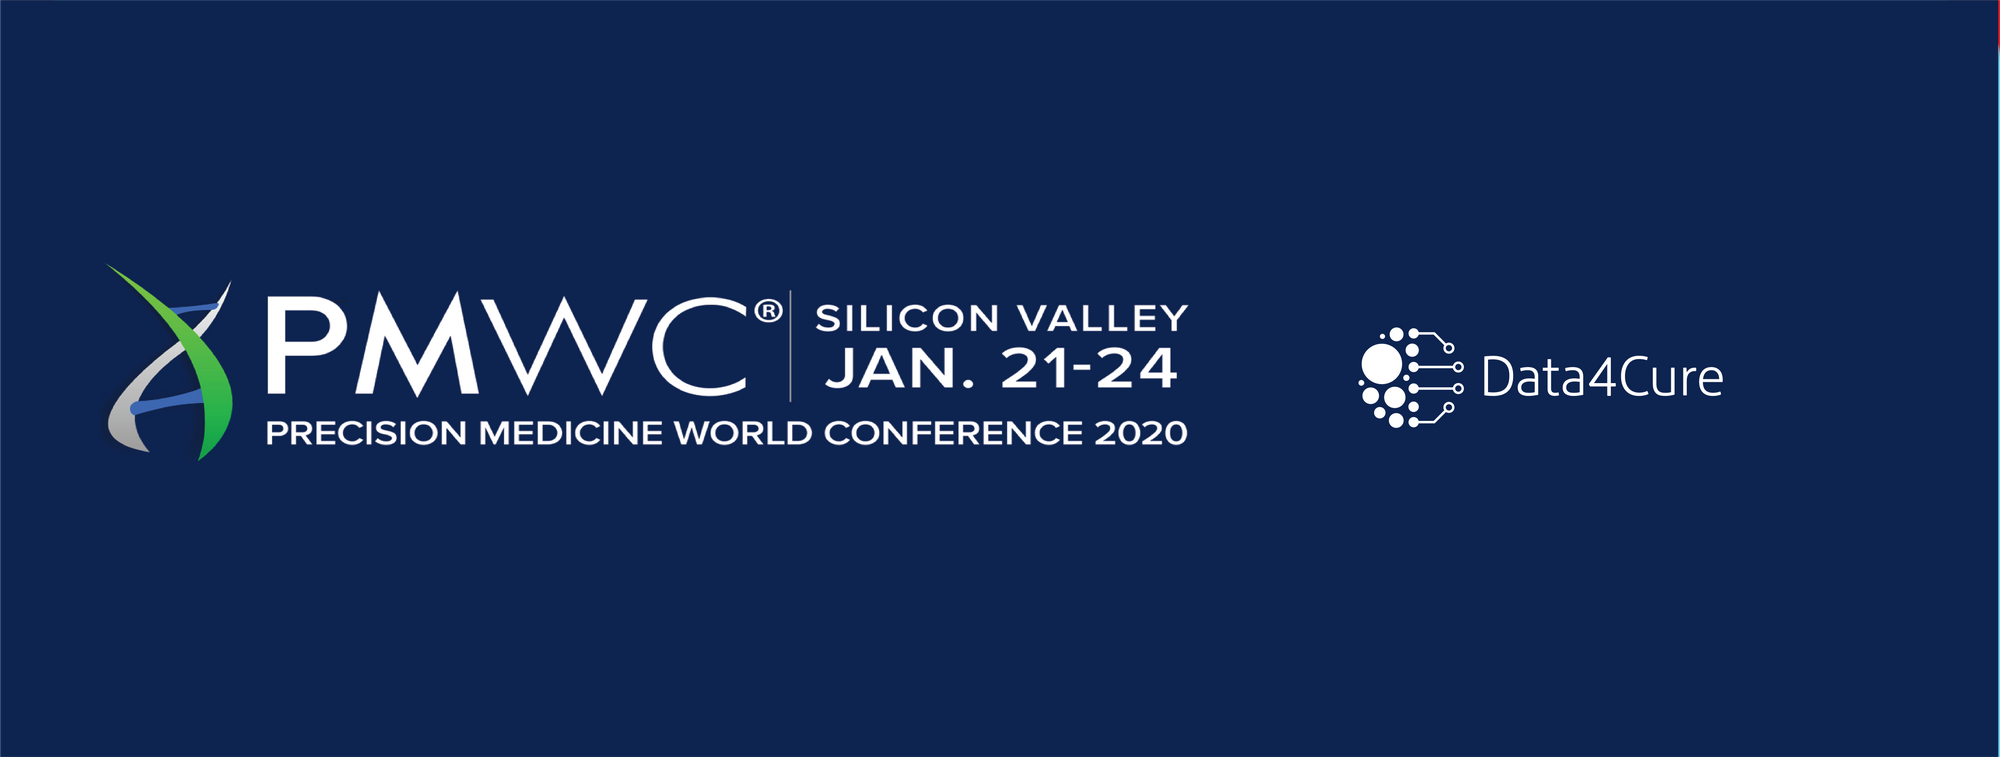 Join us at the 2020 Precision Medicine World Conference (PMWC)